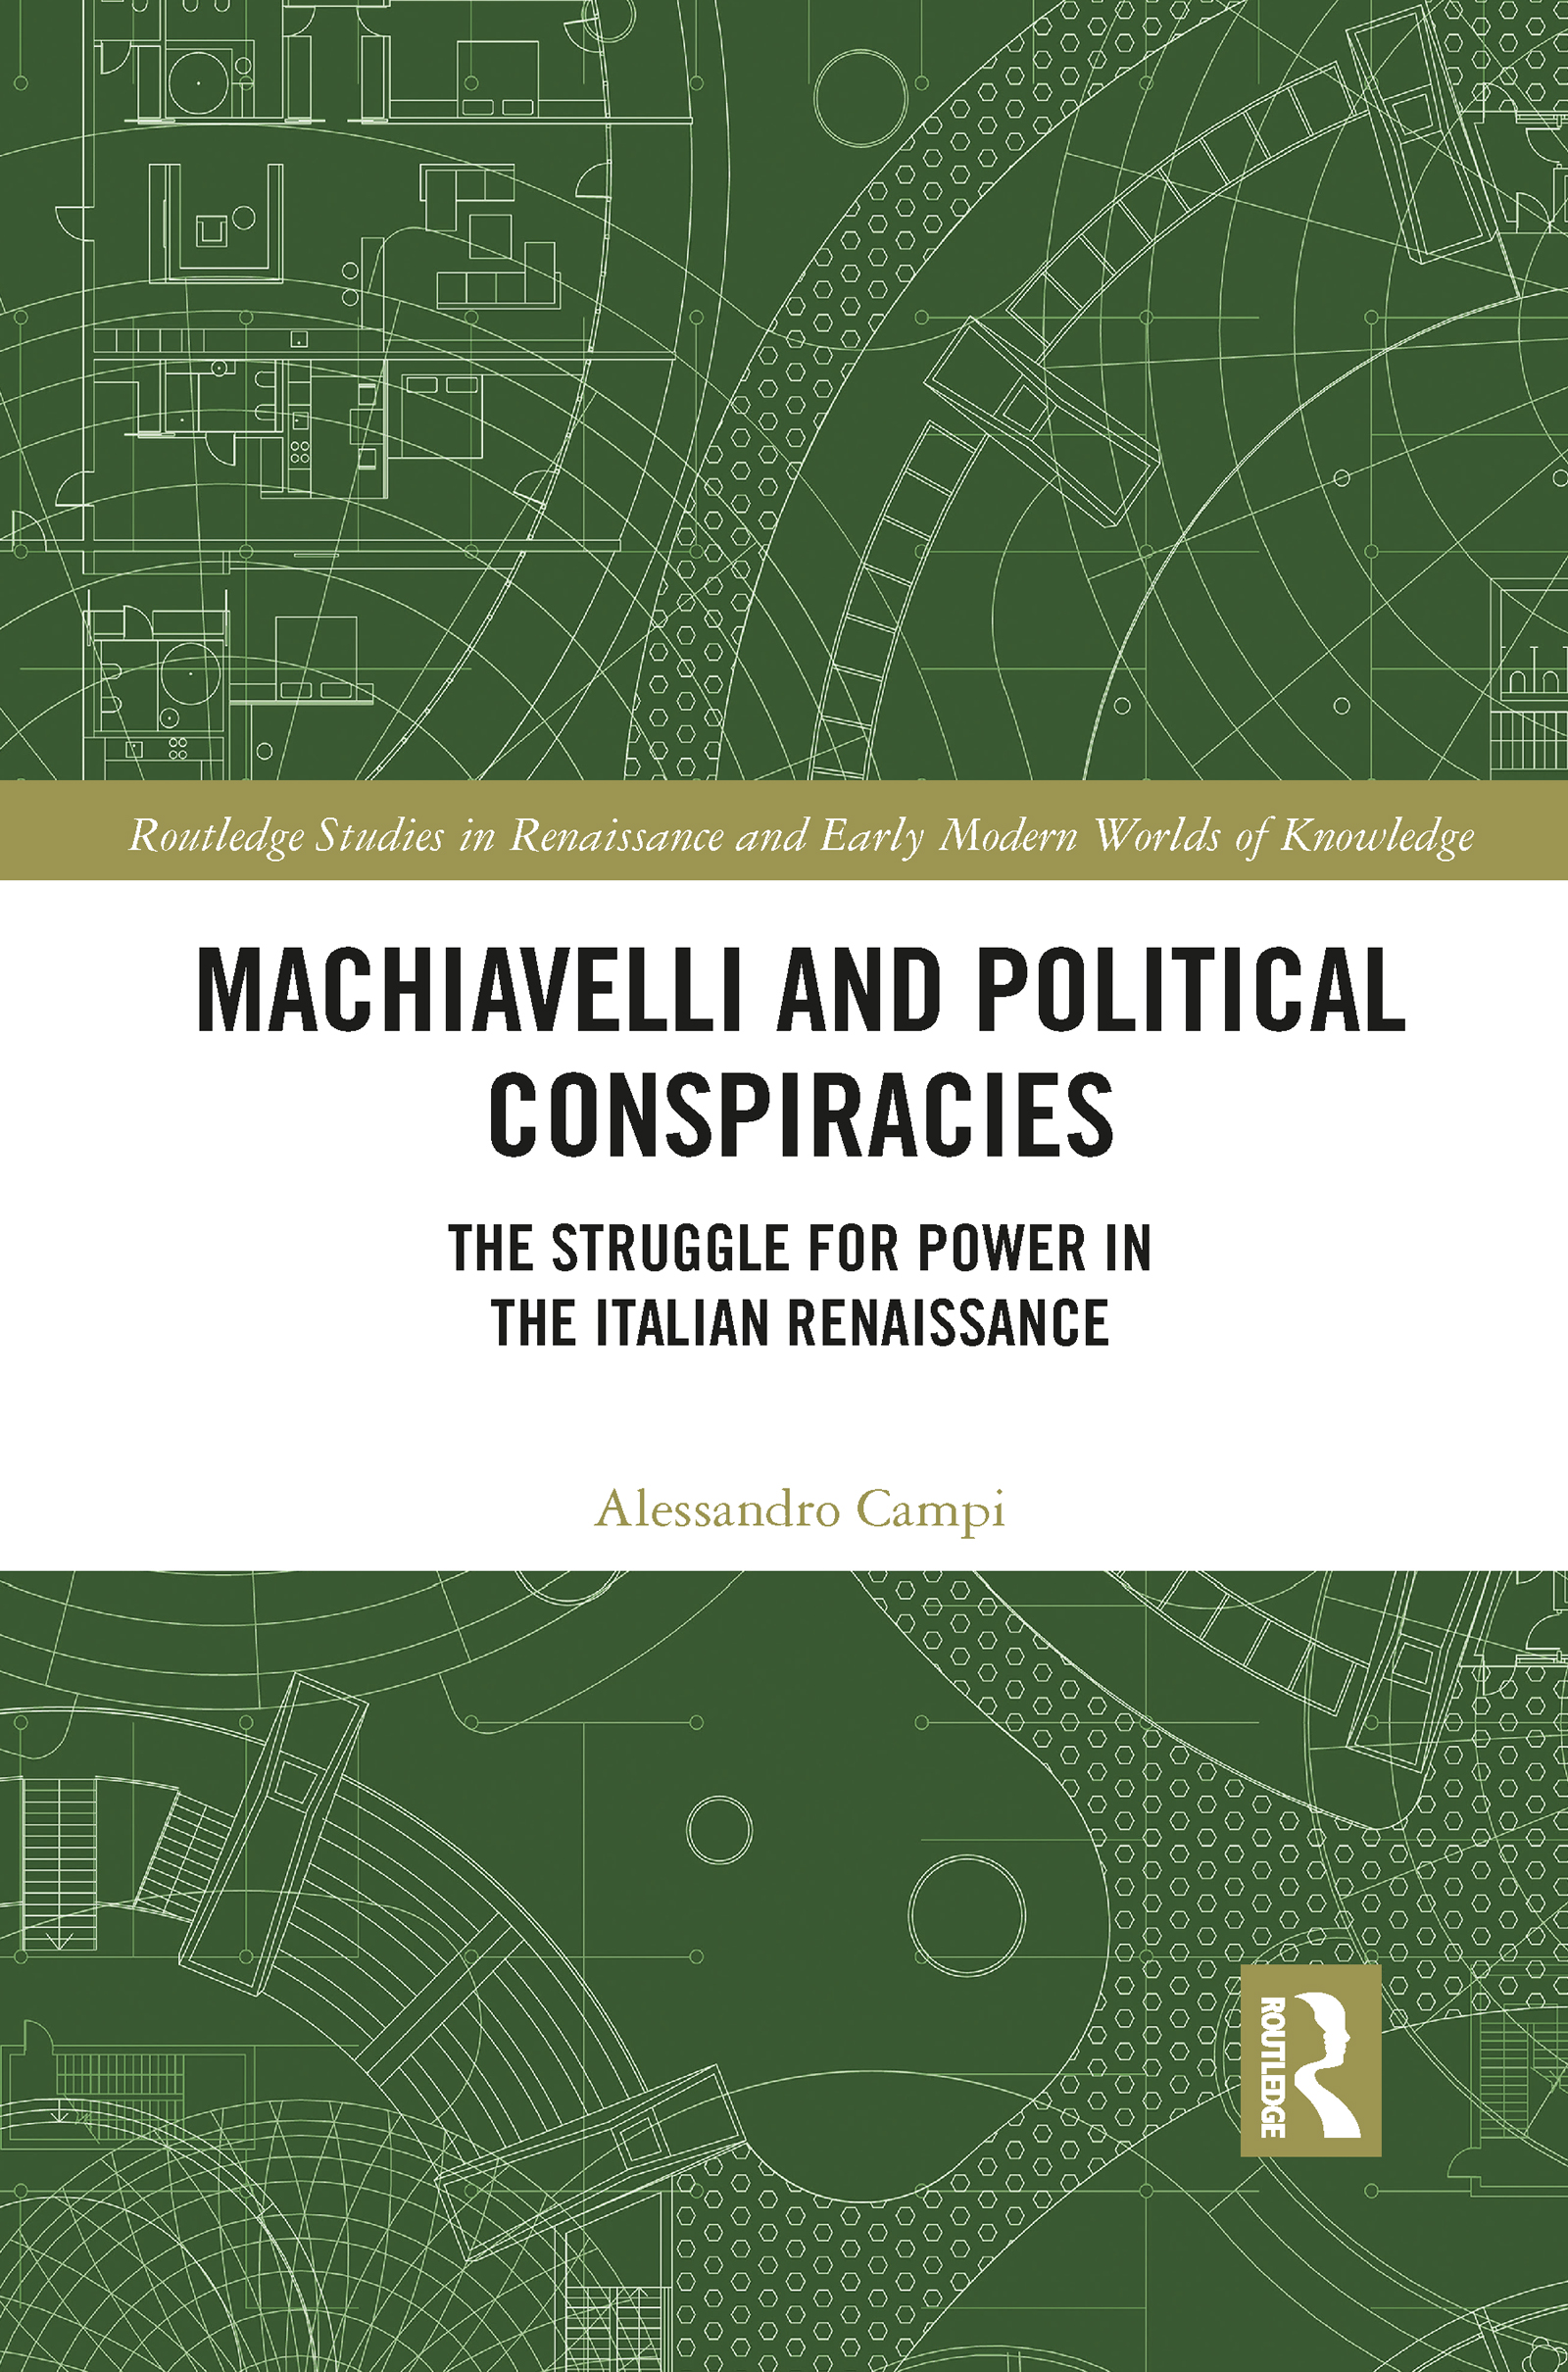 Machiavelli and Political Conspiracies